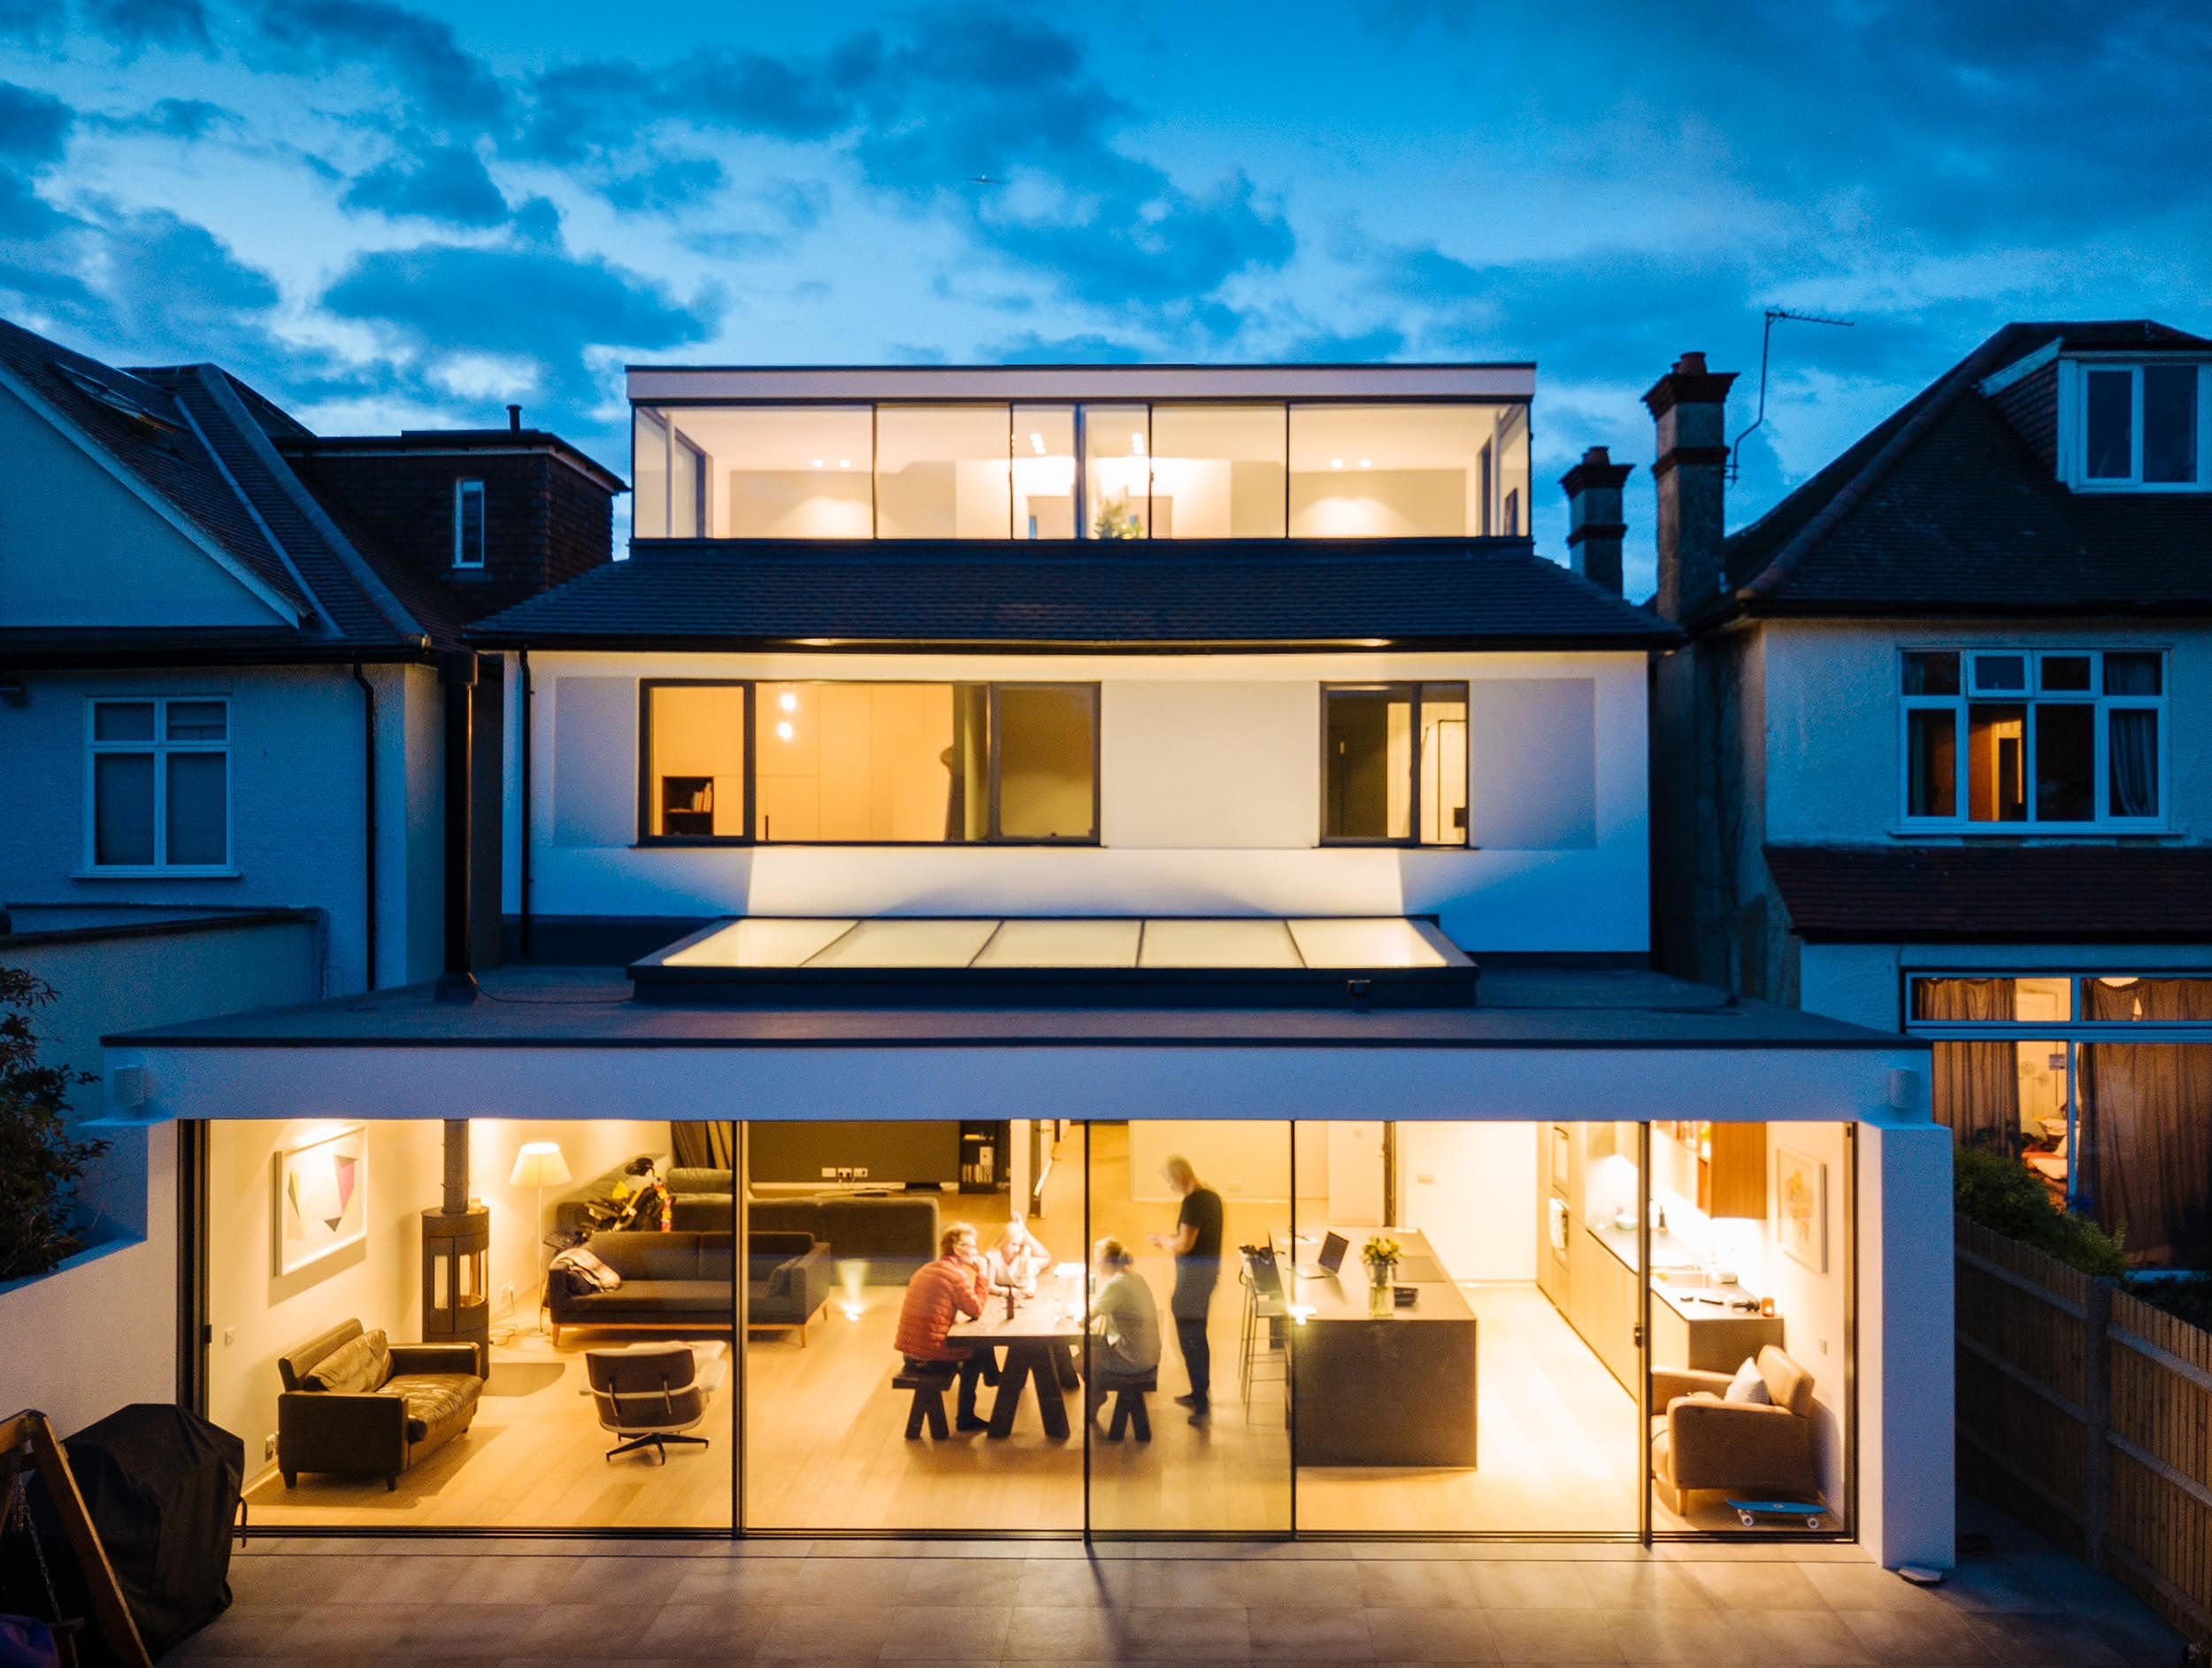 dusk-kitchen-extension-architectural-photographer-house-aerial-view